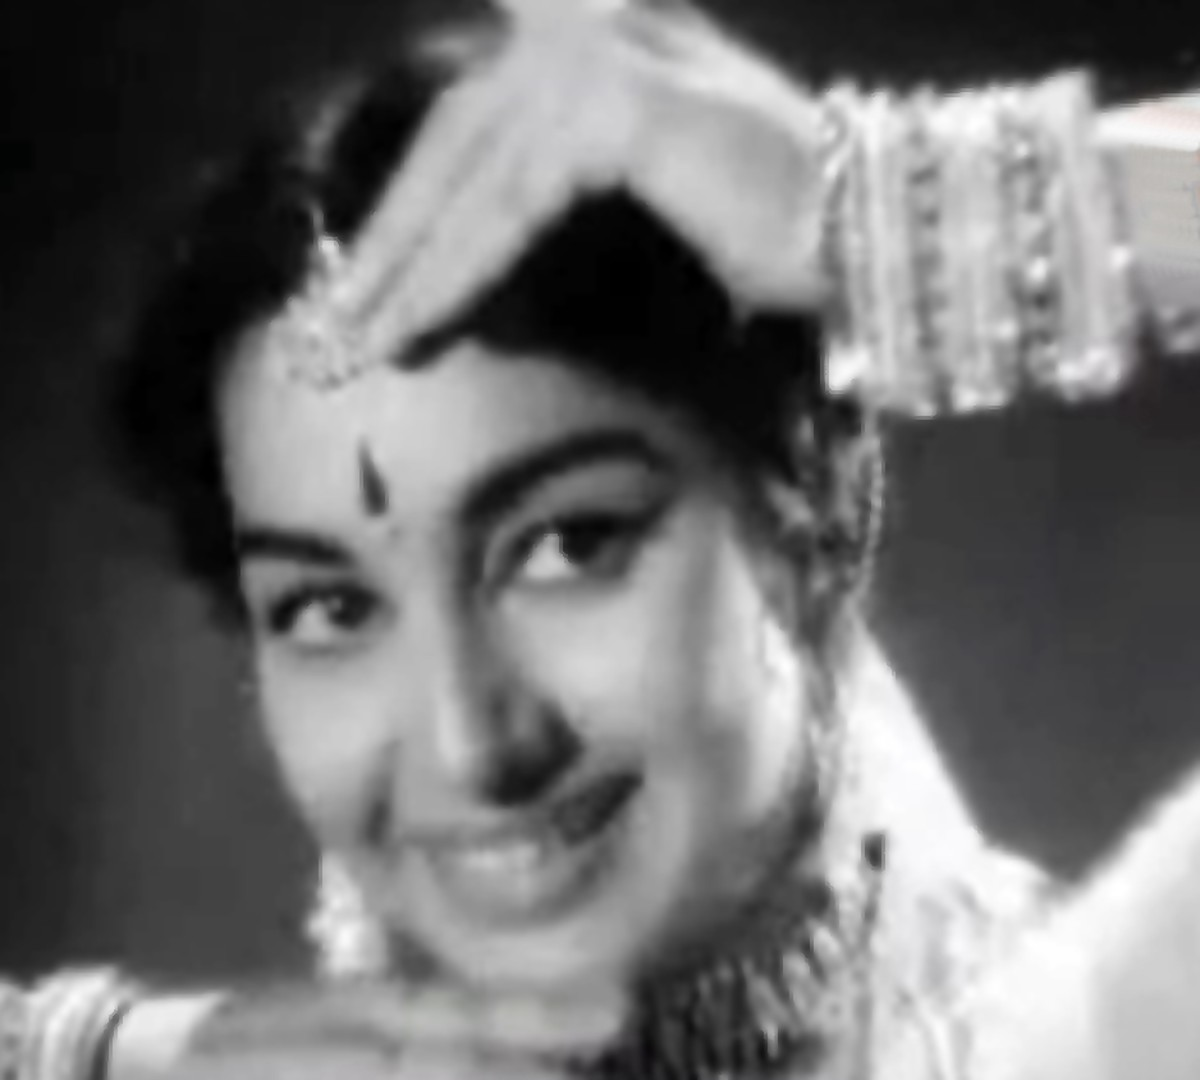 A great number from Mohammed Rafi, based on Raag Bhairavi